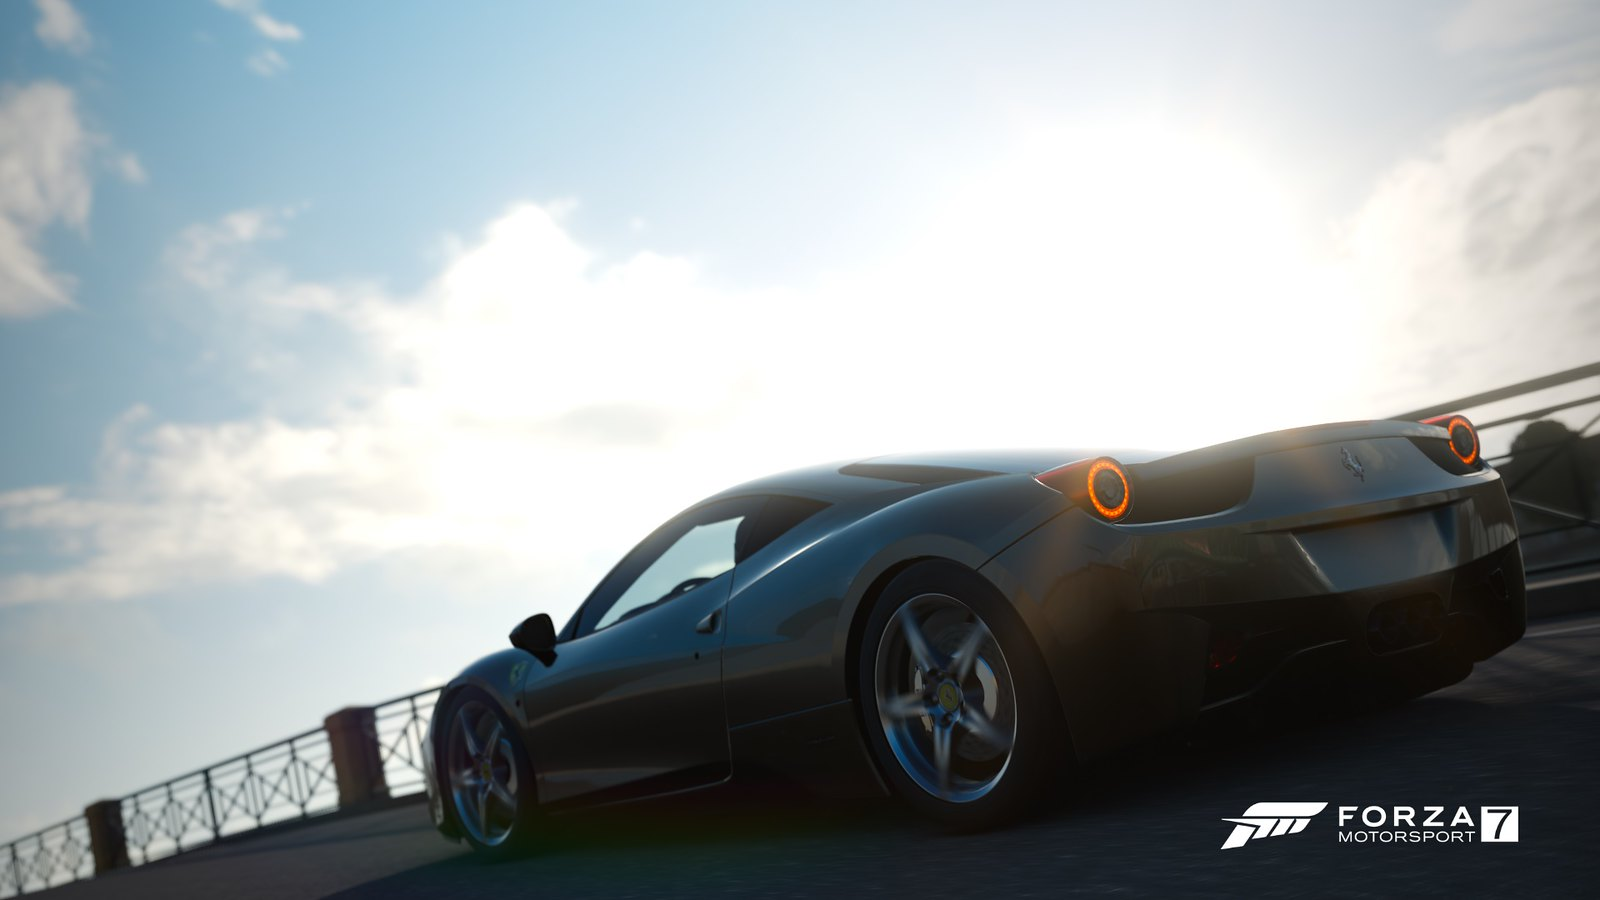 39207368315_012ab94352_h ForzaMotorsport.fr